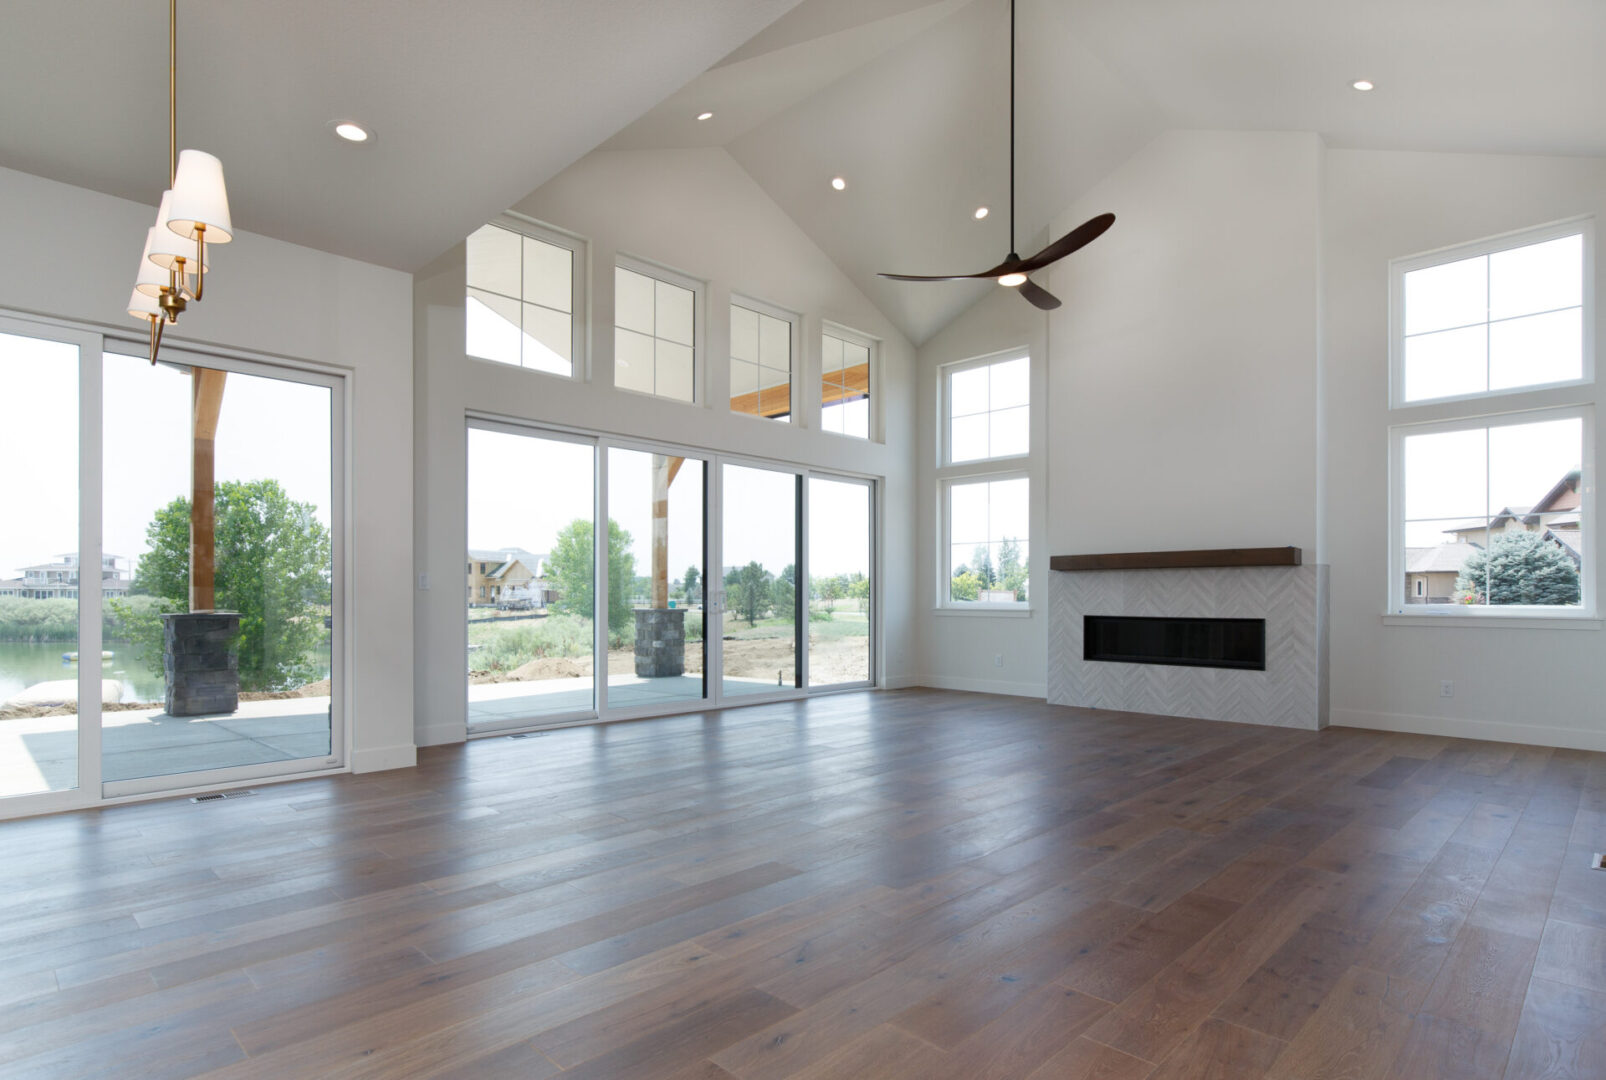 empty room with fireplace and ceiling fans